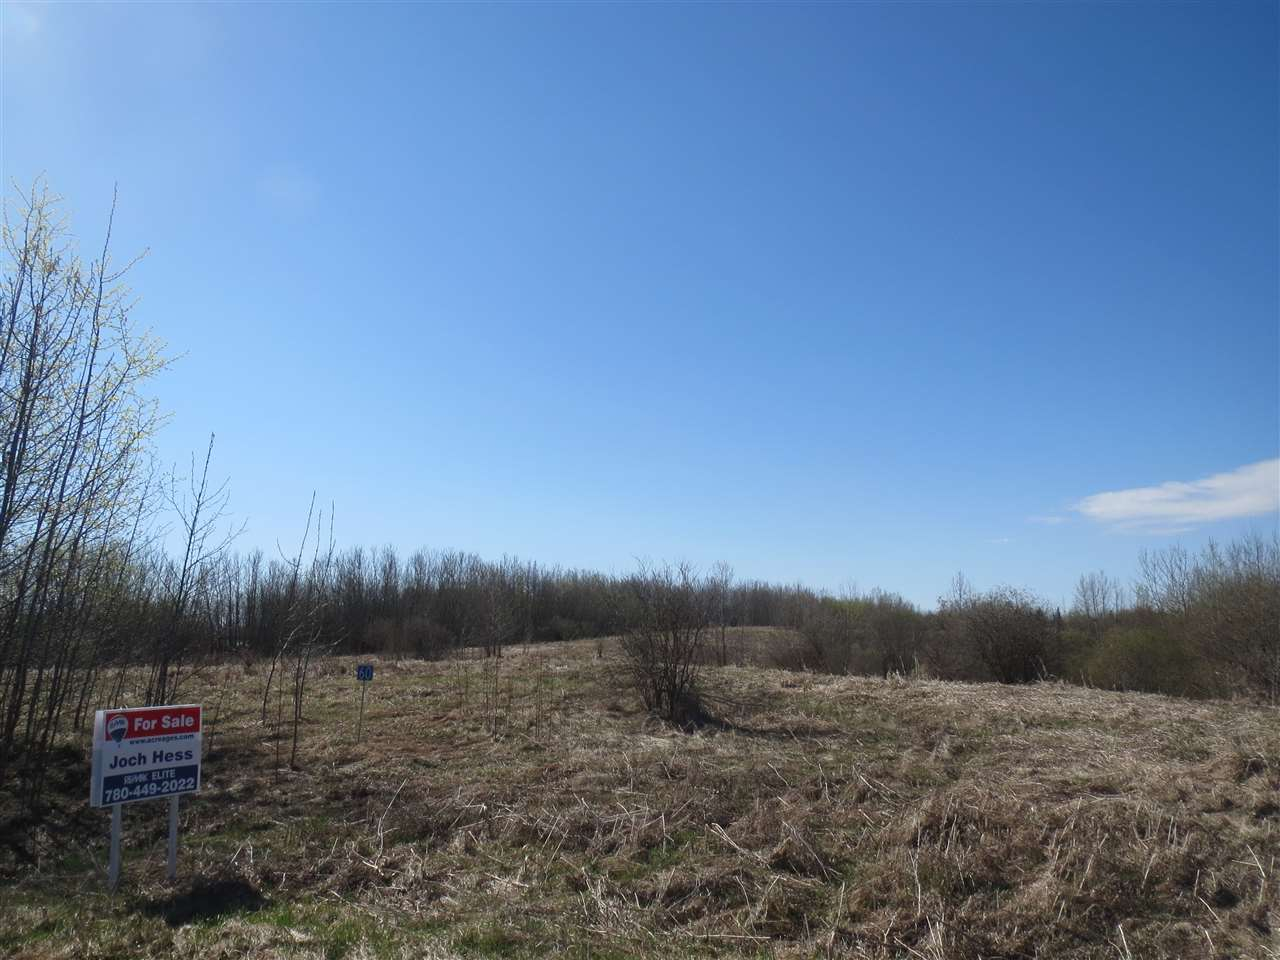 Main Photo: 60 50106 Rg Rd 200: Rural Beaver County Rural Land/Vacant Lot for sale : MLS®# E4063127